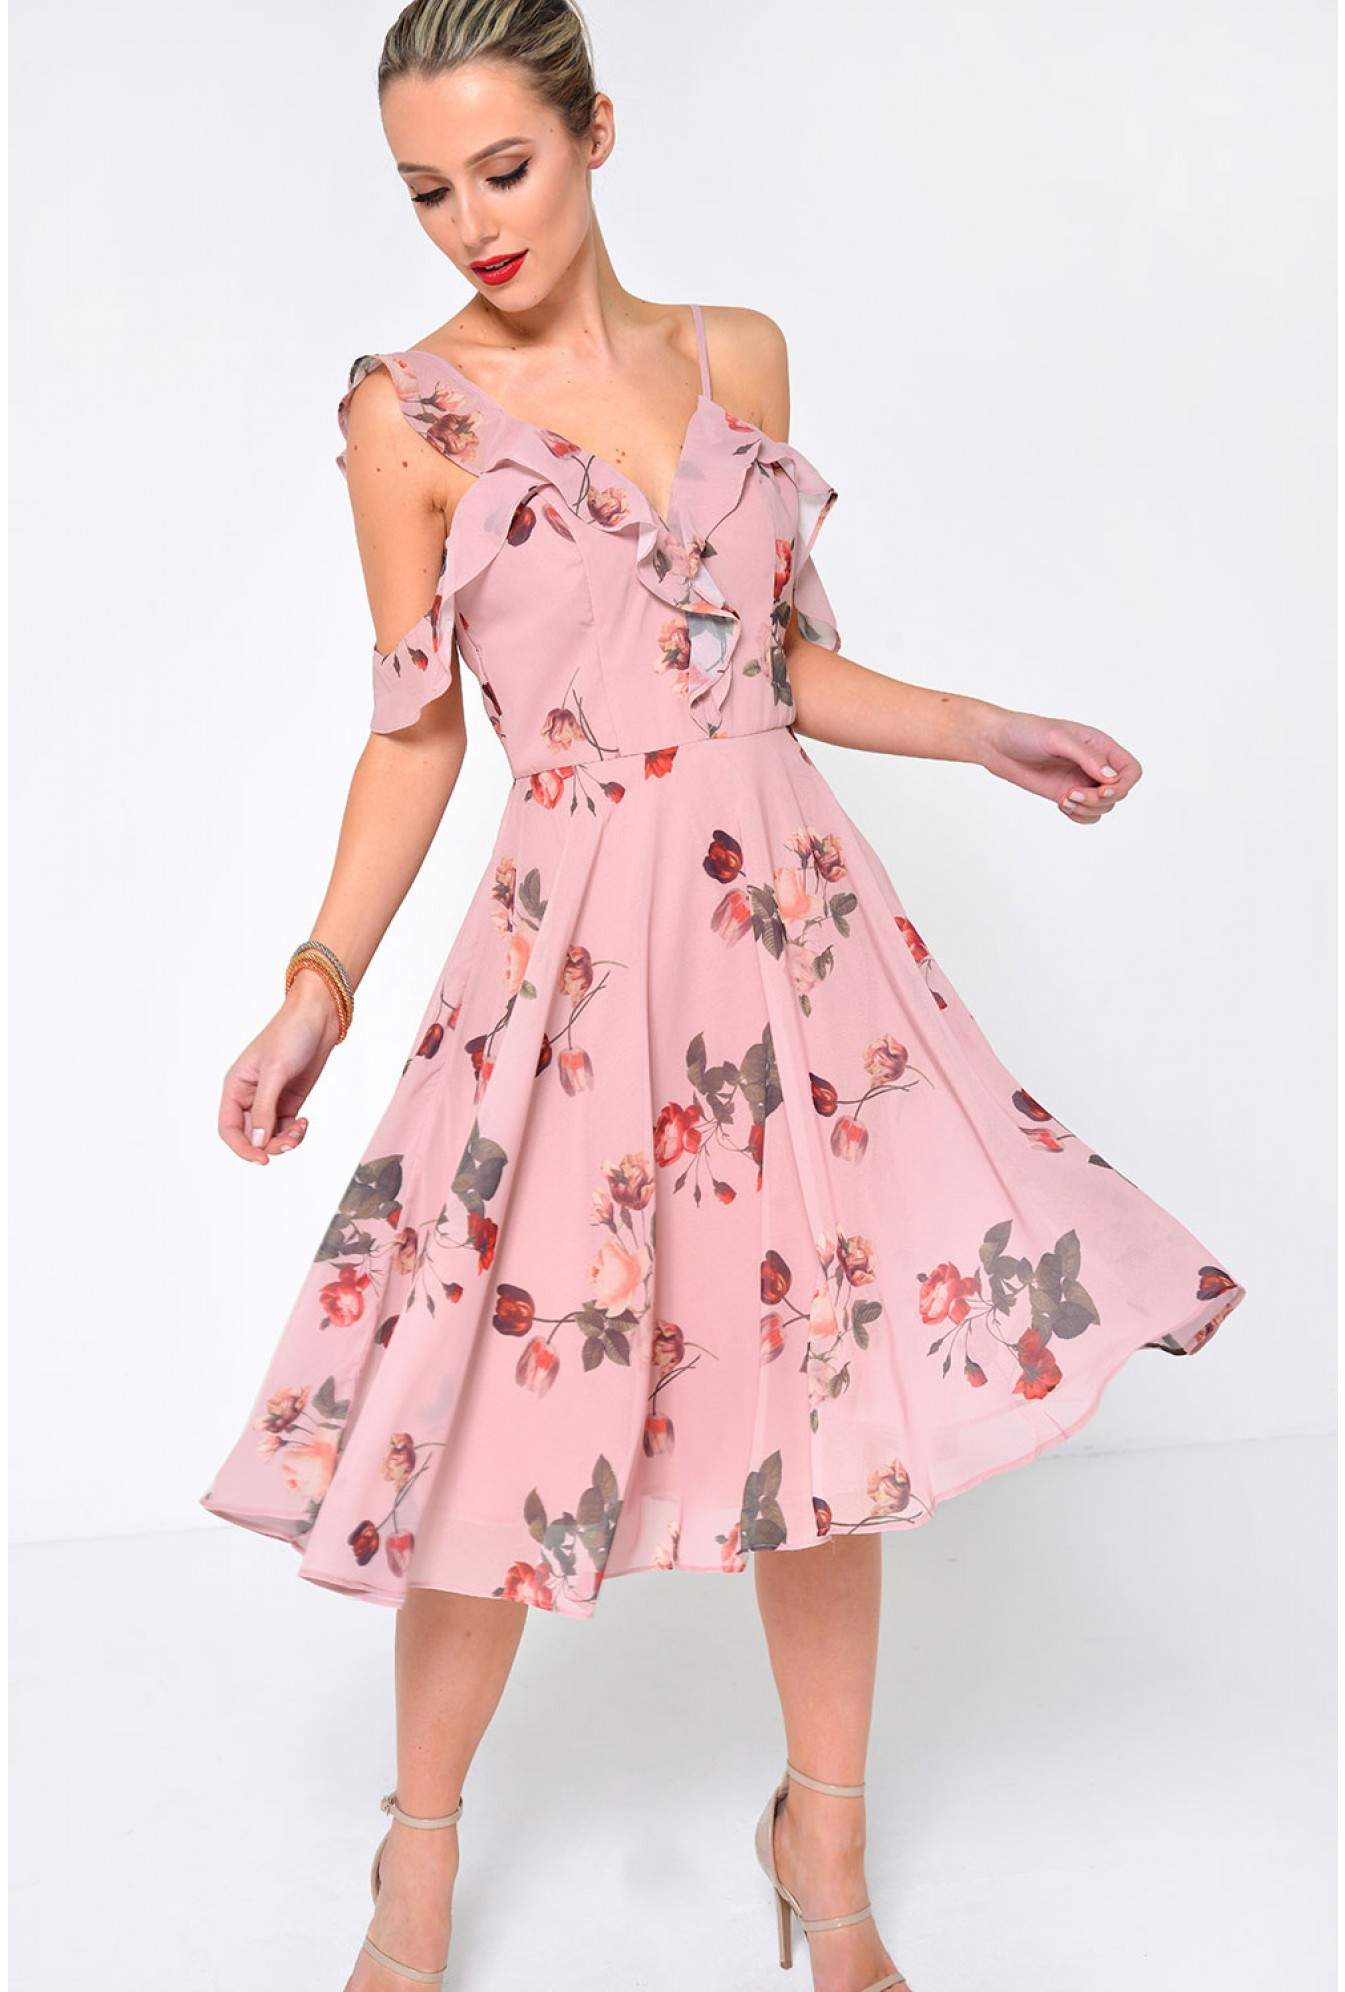 More Views. Leasha Floral Midi Dress in Dusty Pink 66a029c5f